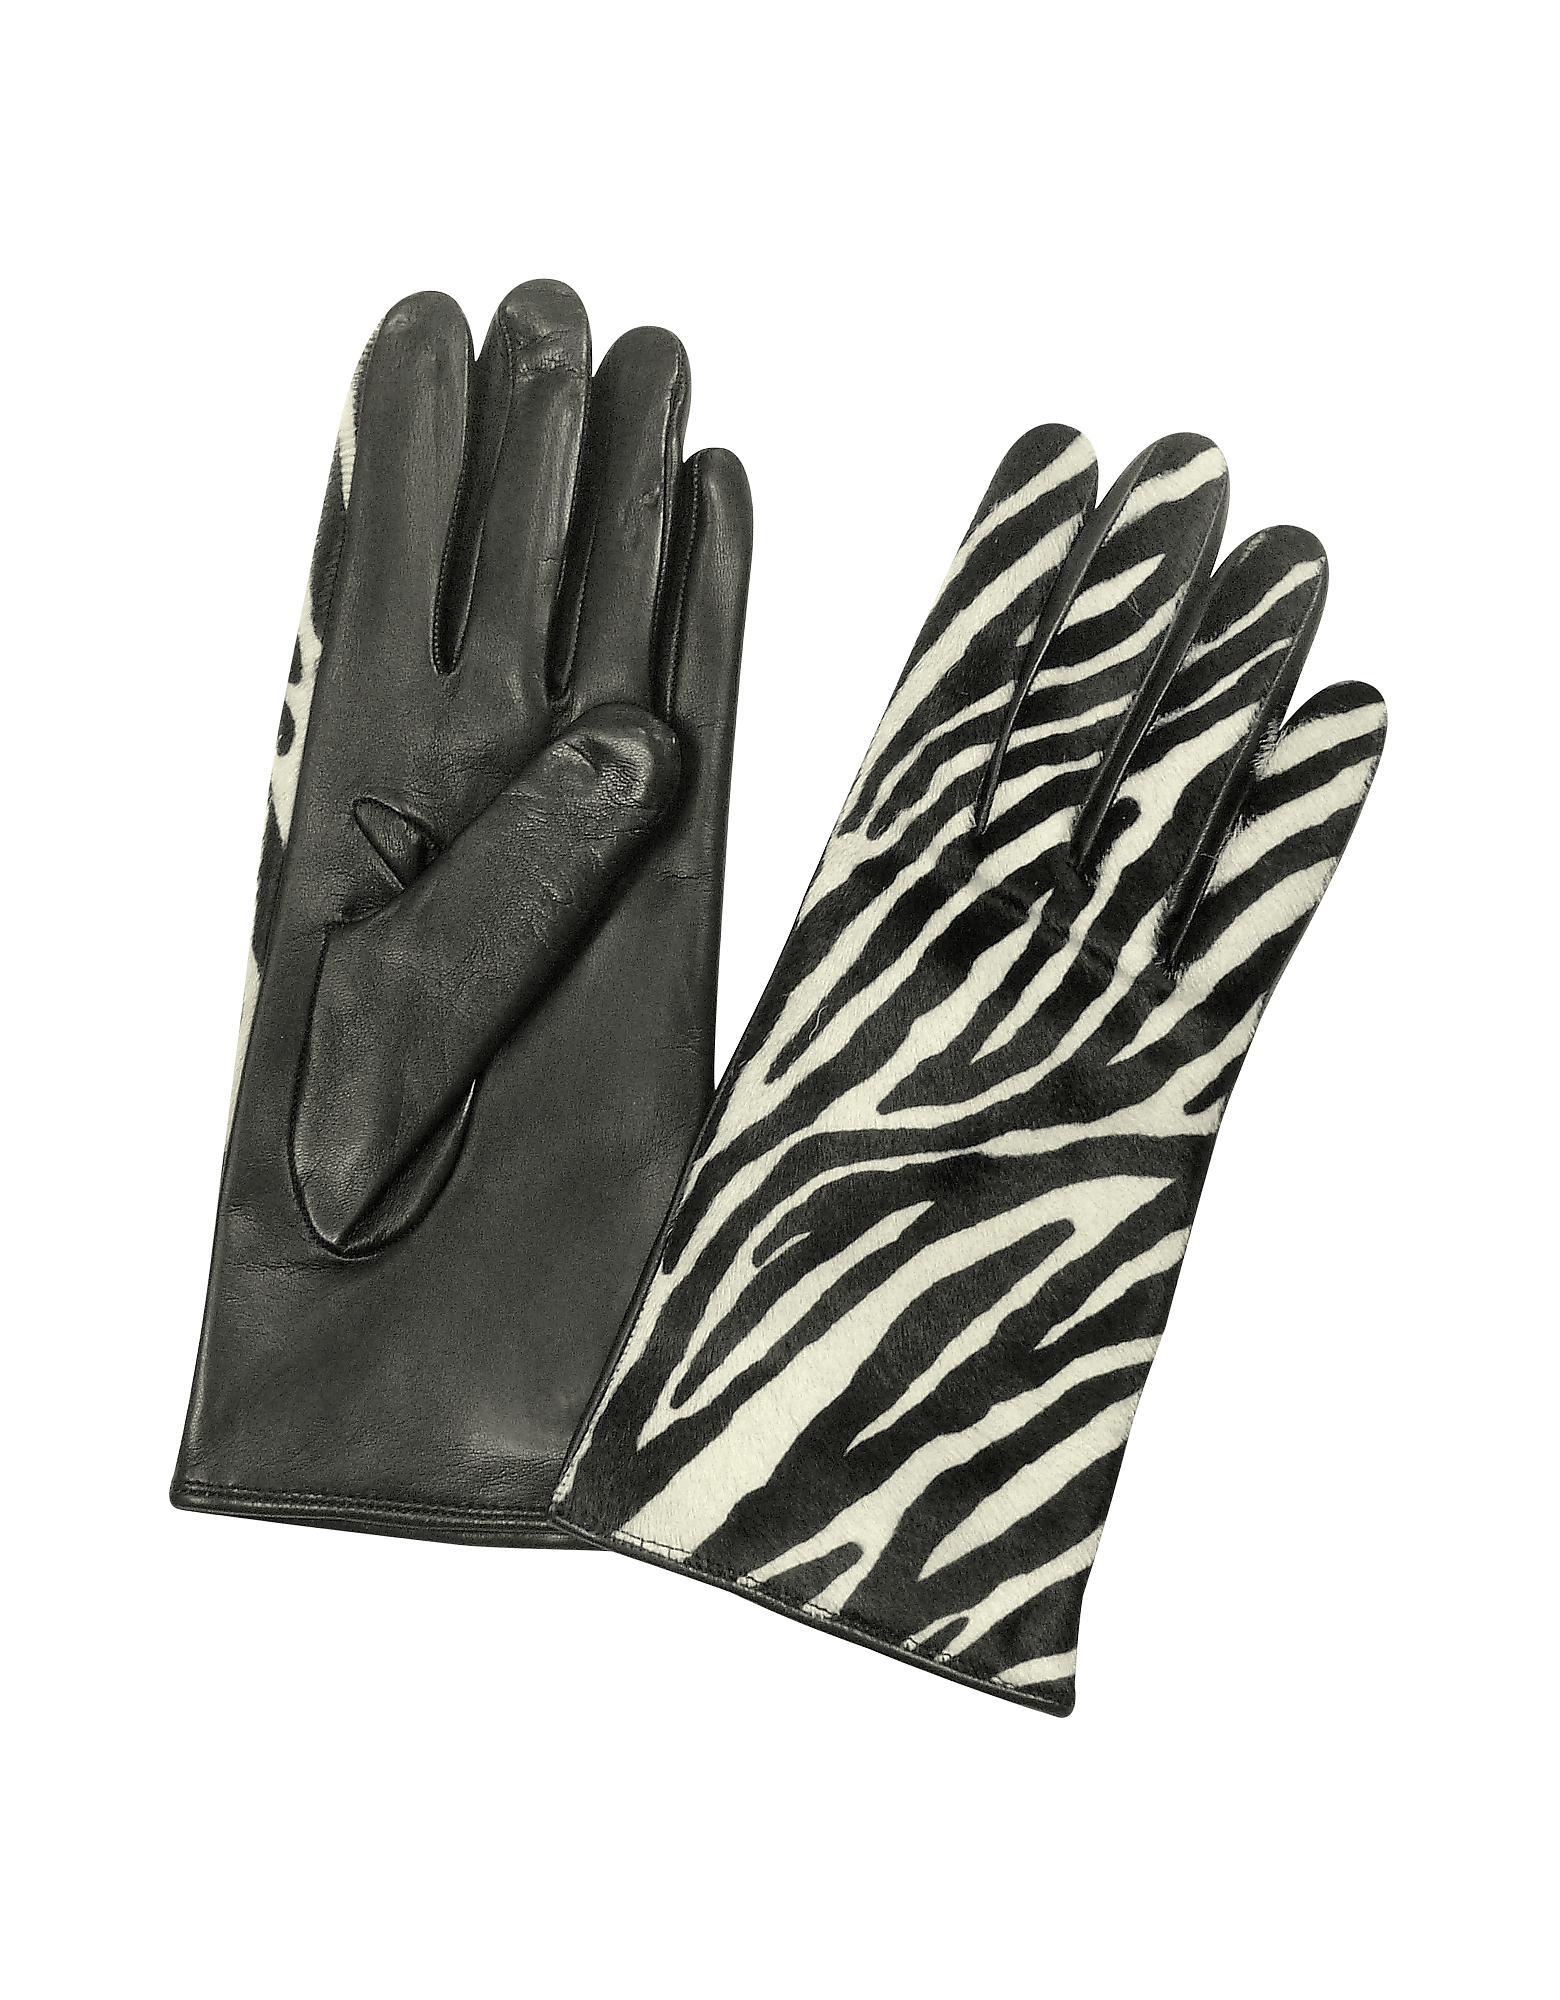 Forzieri Designer Women's Gloves, Women's Zebra Pony Hair and Italian Nappa Leather Gloves